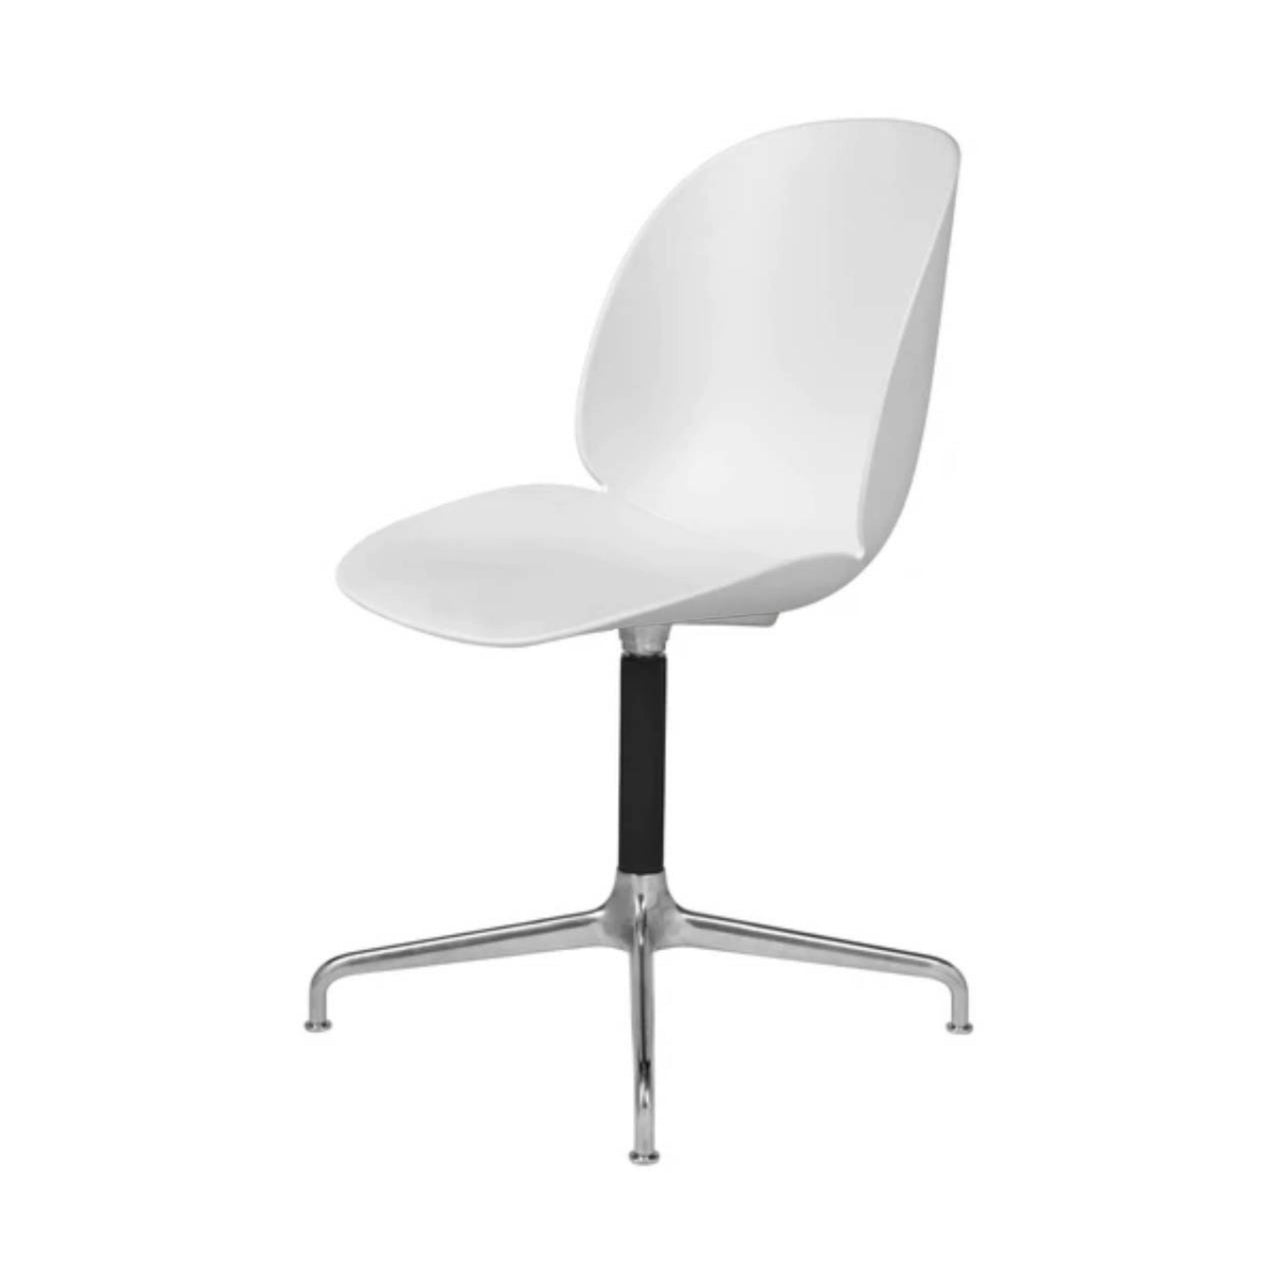 Beetle Meeting Chair: 4-Star Swivel Base: Soft White + Polished Aluminum + Black Matte Base + Plastic Glides